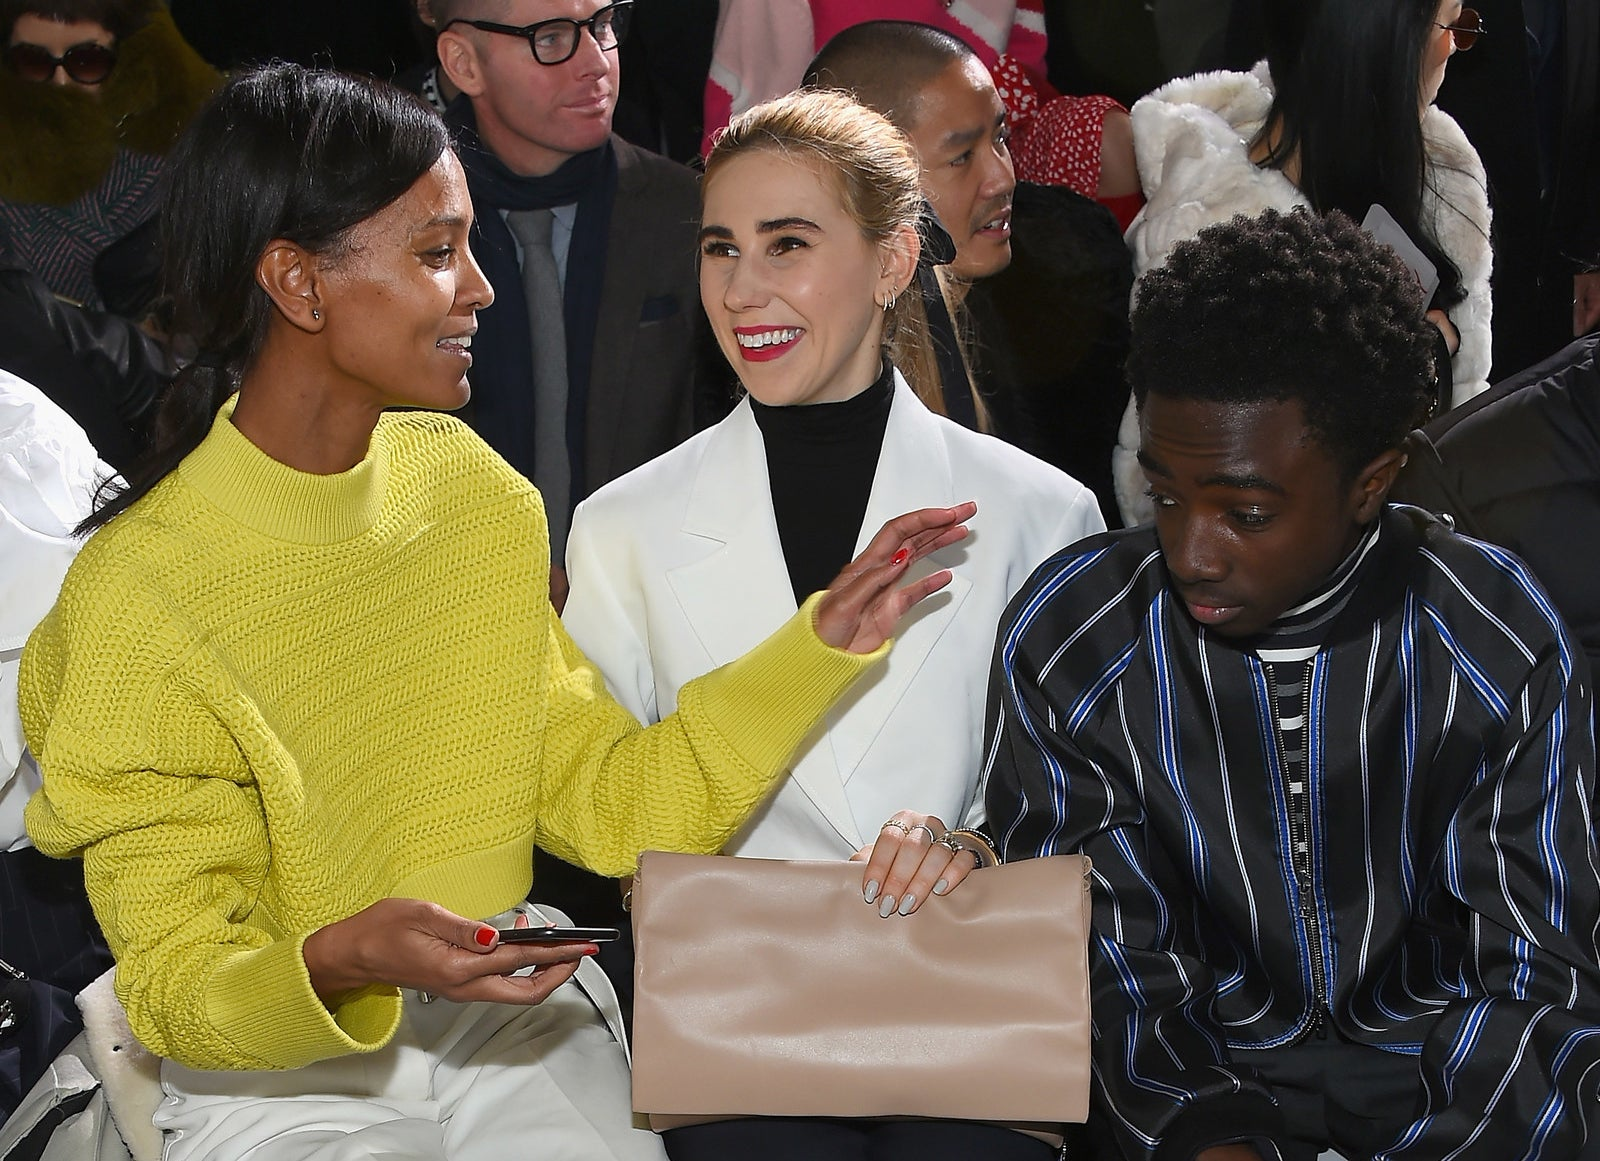 2018: Liya Kebede, Zosia Mamet and Caleb McLaughlin.